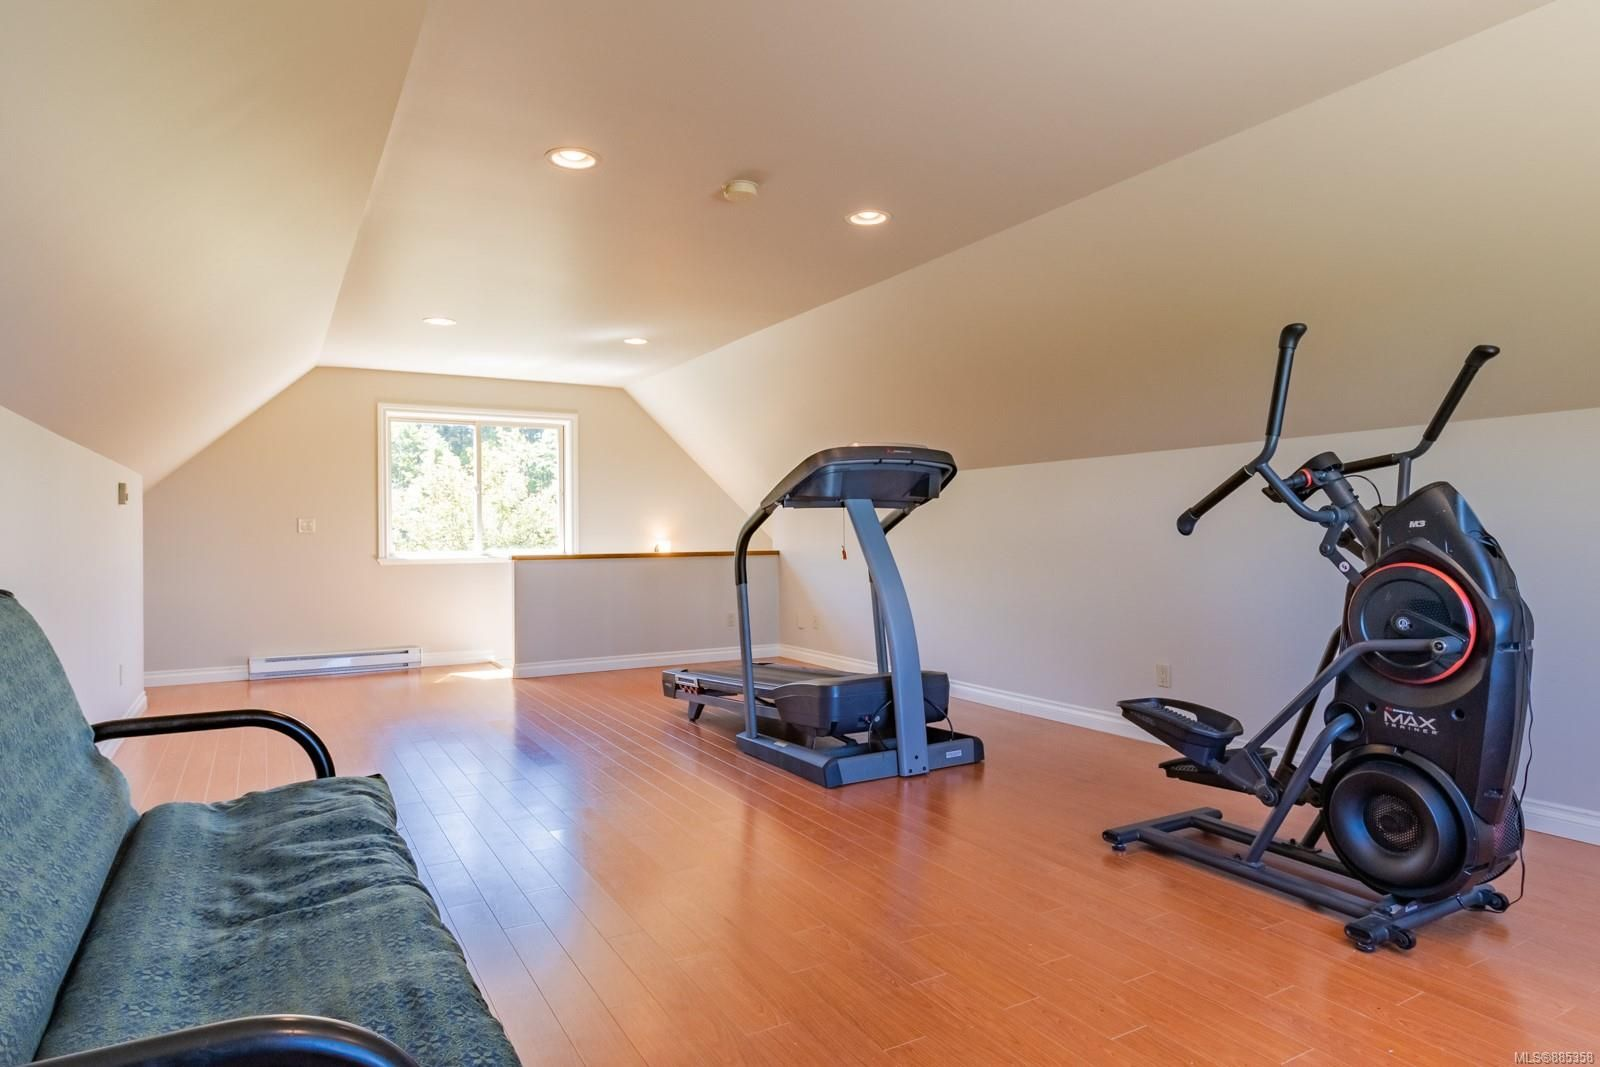 Photo 42: Photos: 2850 Peters Rd in : PQ Qualicum Beach House for sale (Parksville/Qualicum)  : MLS®# 885358